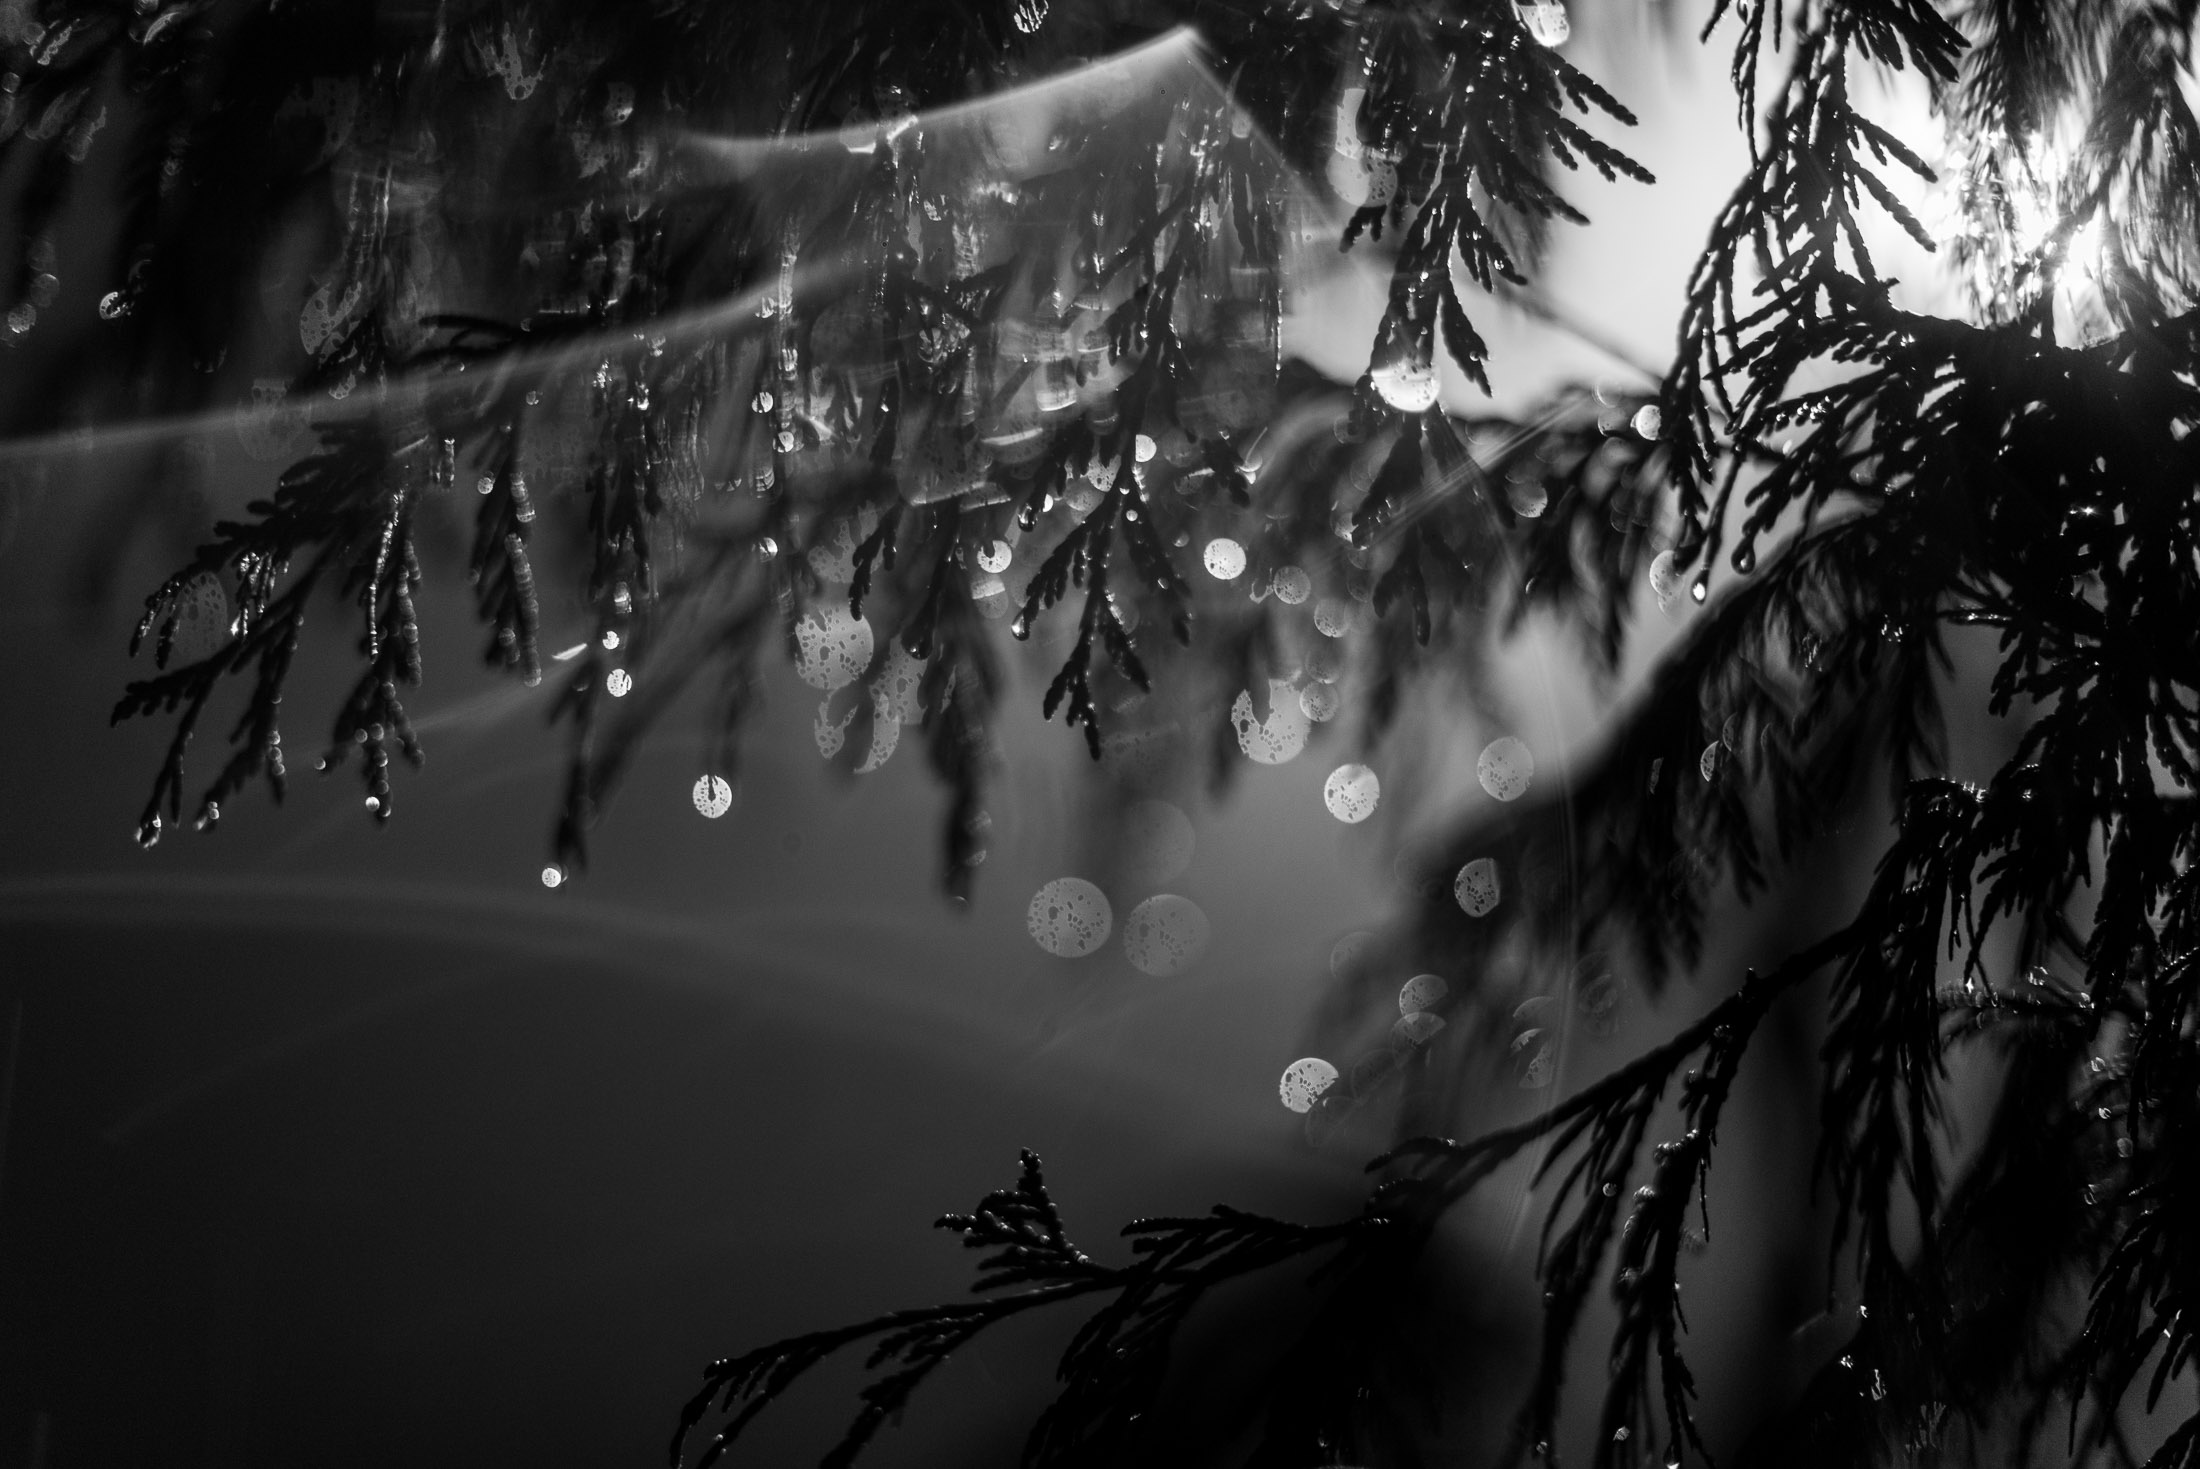 The tree collects little raindrops creating the illusion of natures Christmas lights for the camera in Vancouver, British Columbia. Photography by Kristine Nyborg ( www.wildblueberryphotography.com )